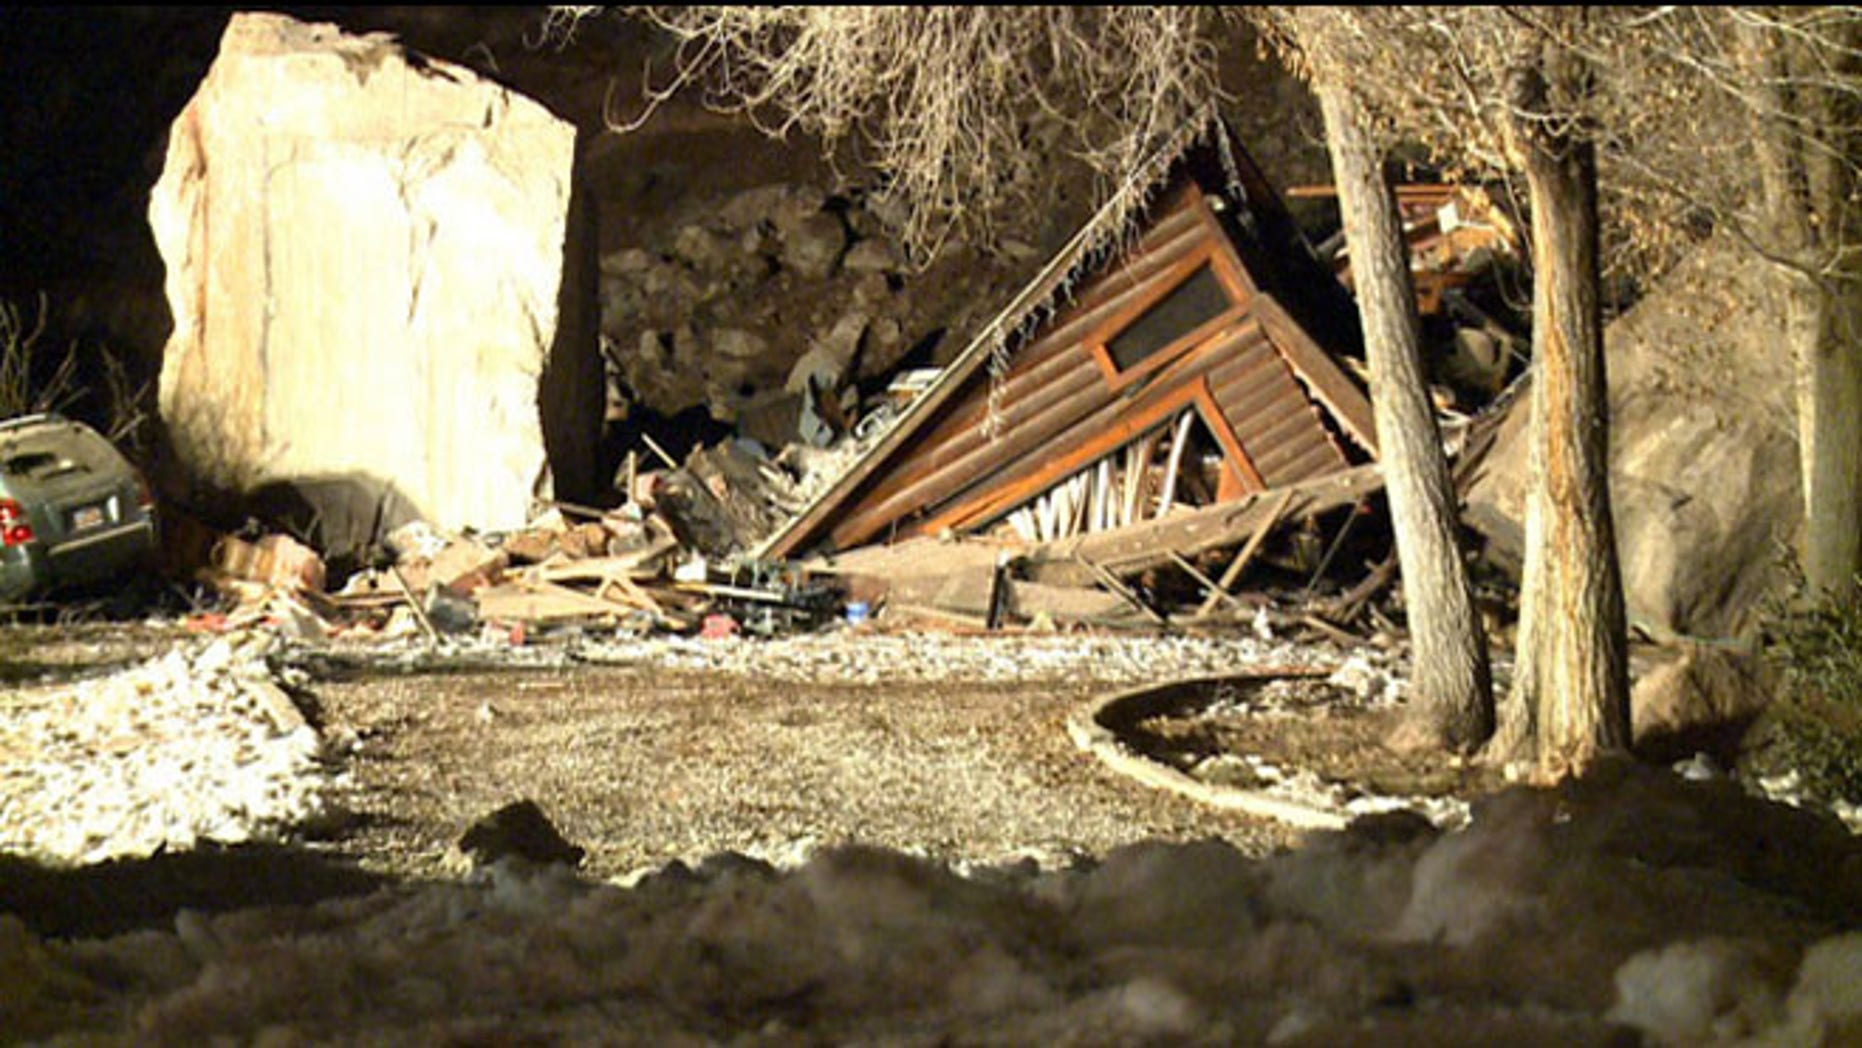 Rockville, Utah, authorities said they will resume work at the site where two people were killed in a rock slide.